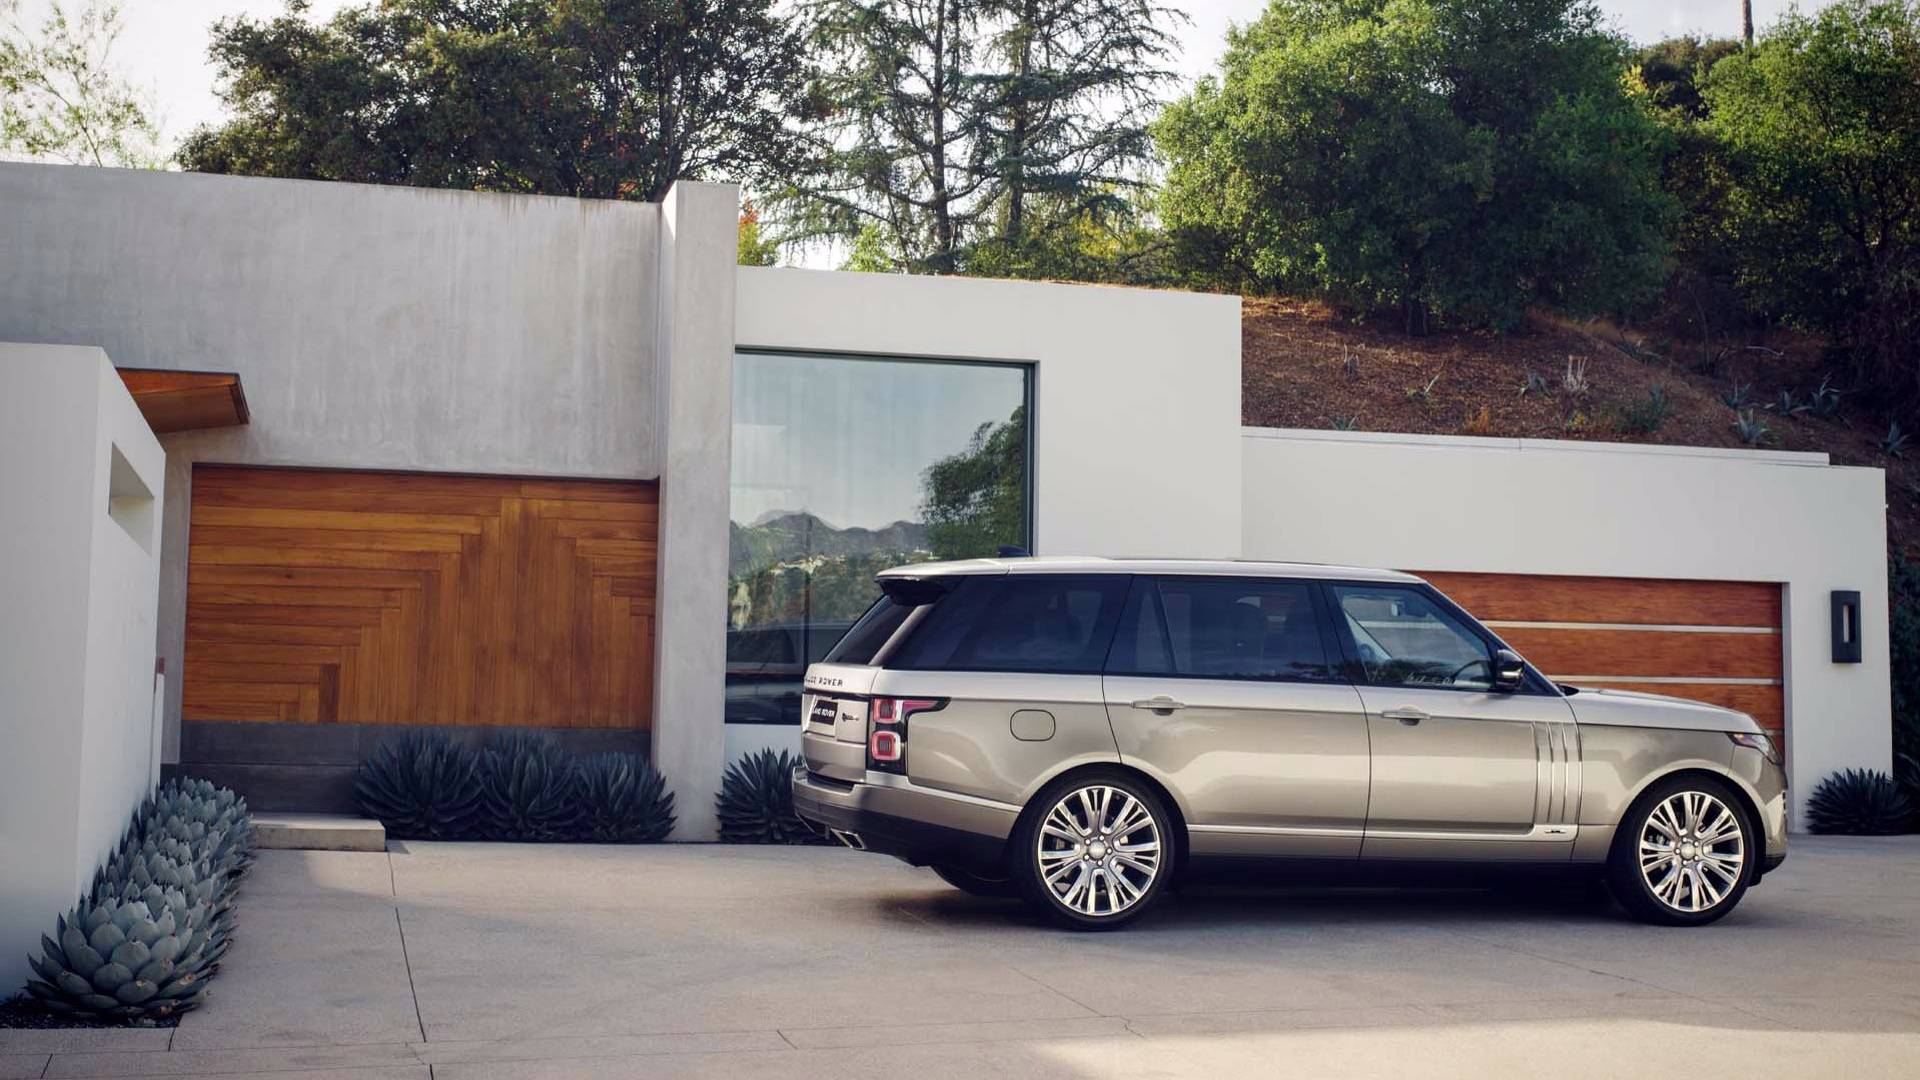 Land Rover Hints At Ultra Luxurious Range With Two Doors